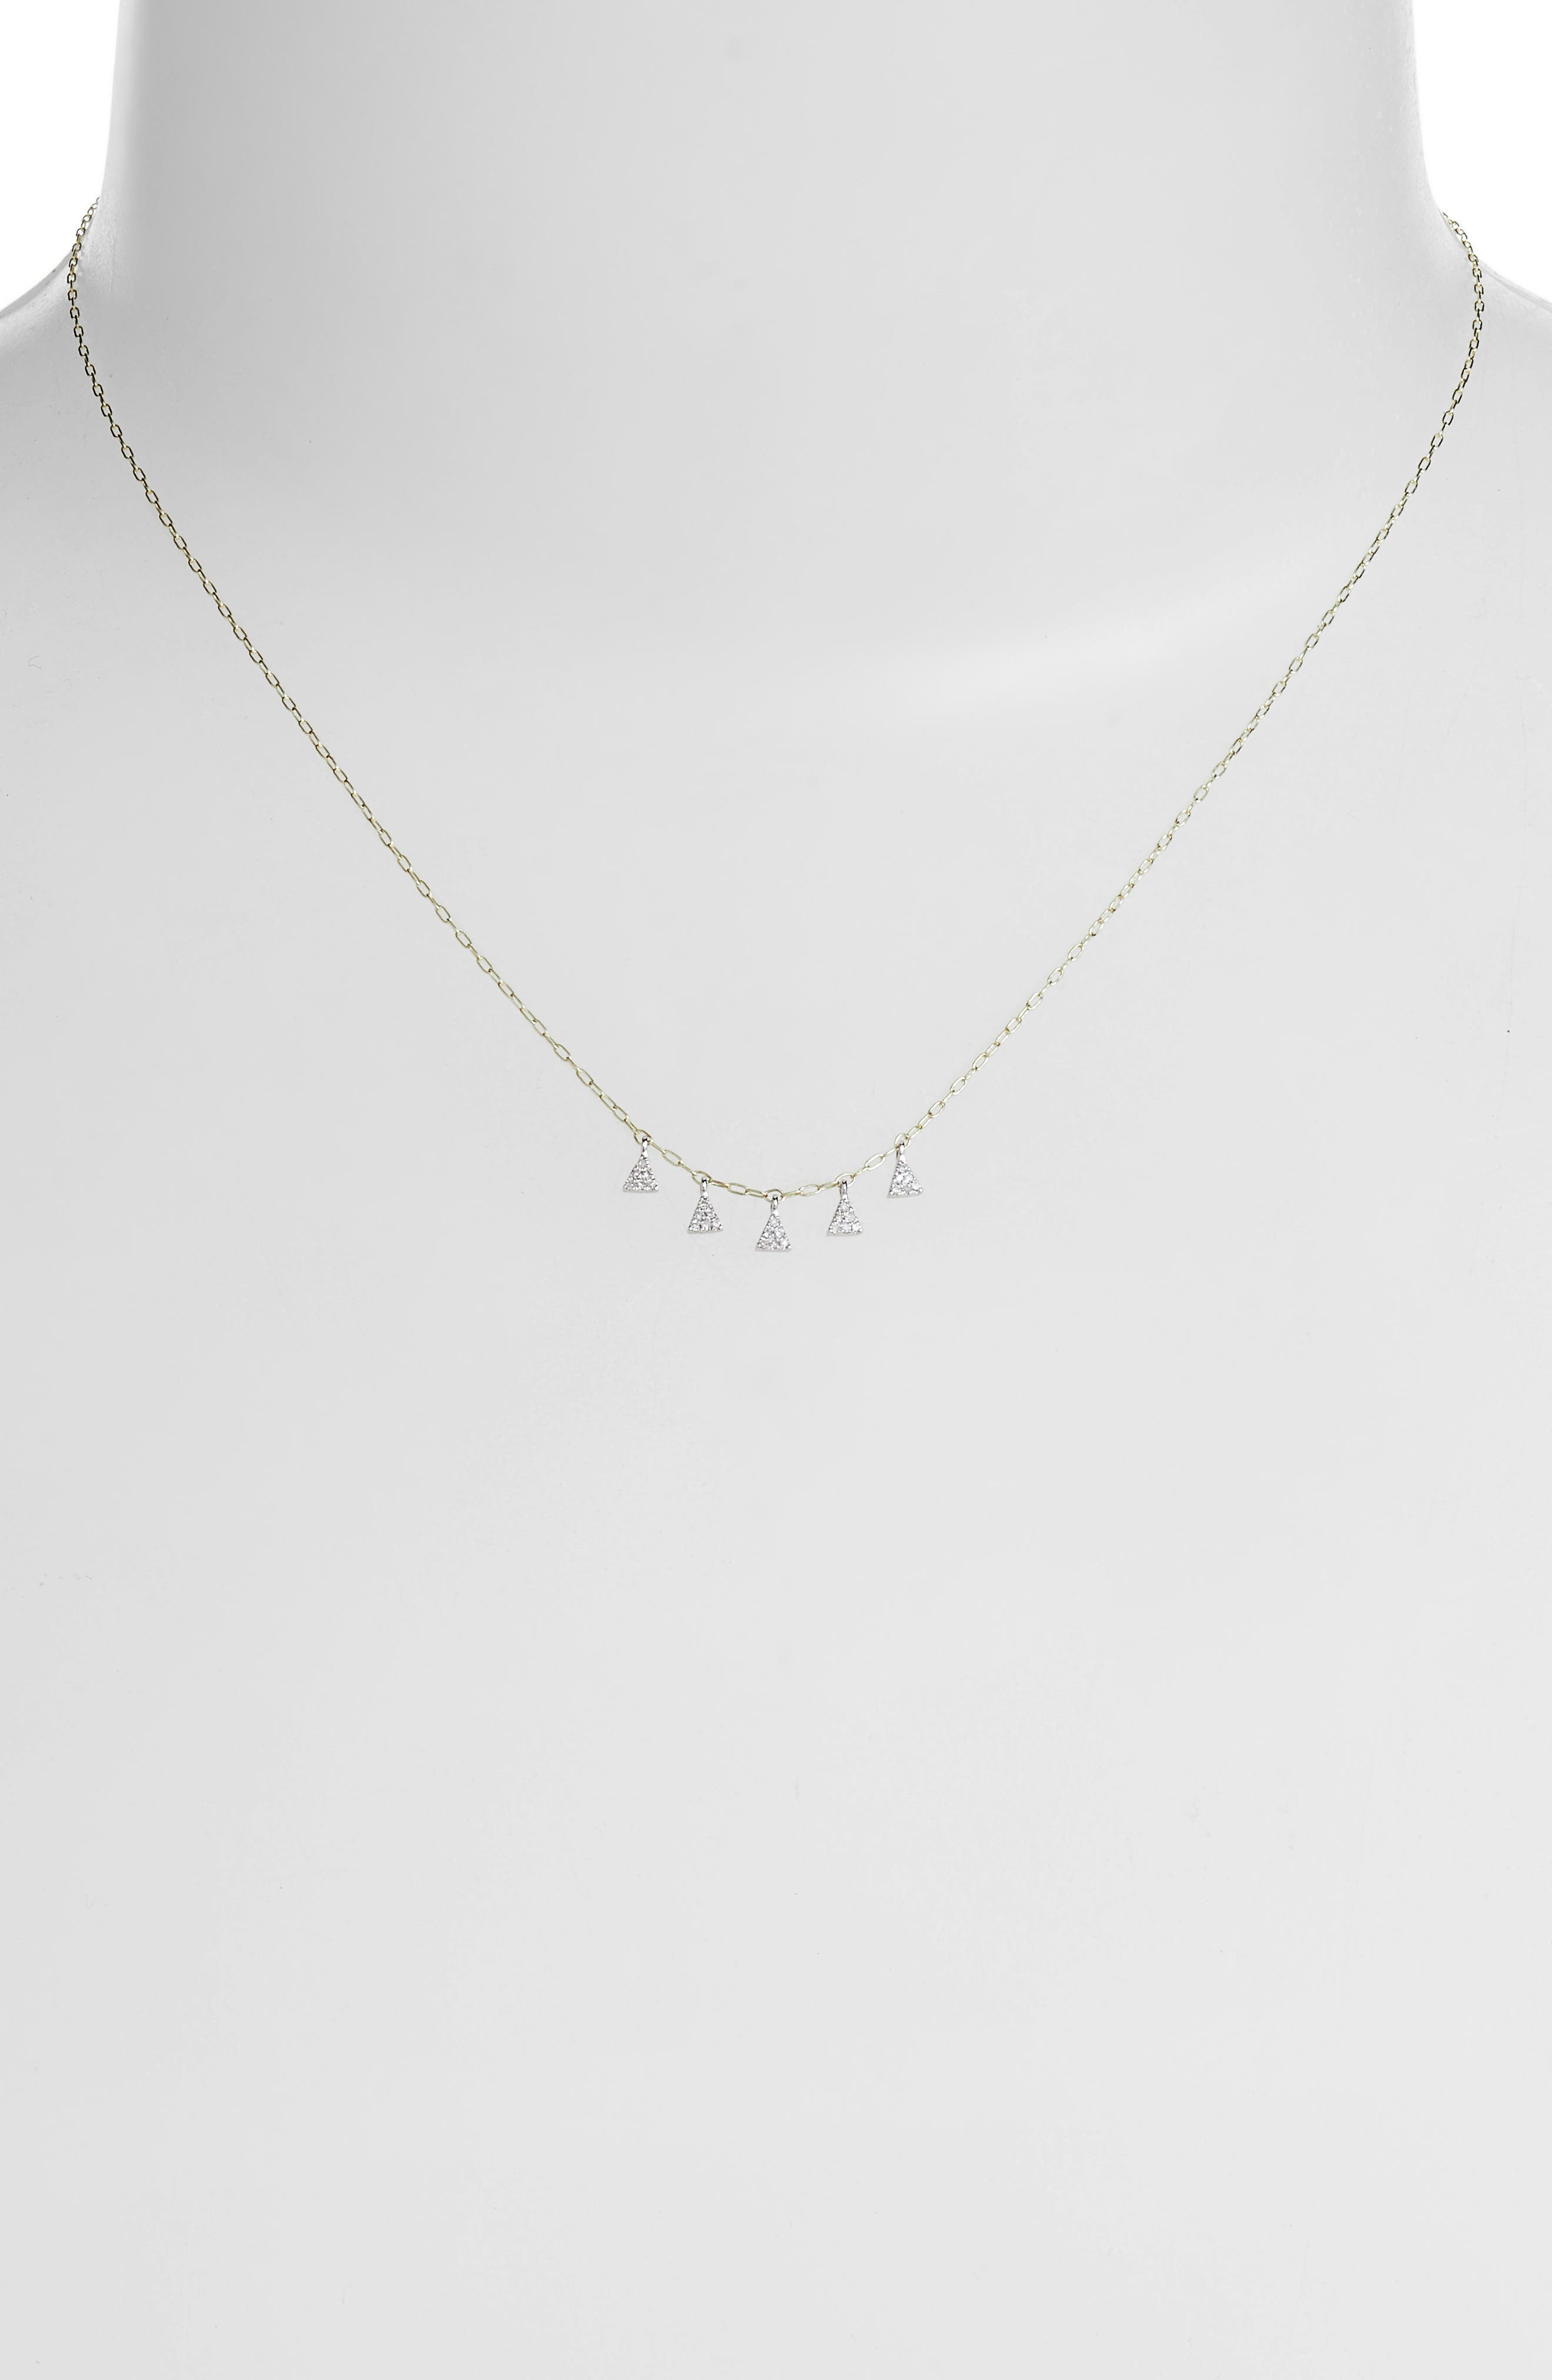 Meira T 5-Diamond Charm Necklace